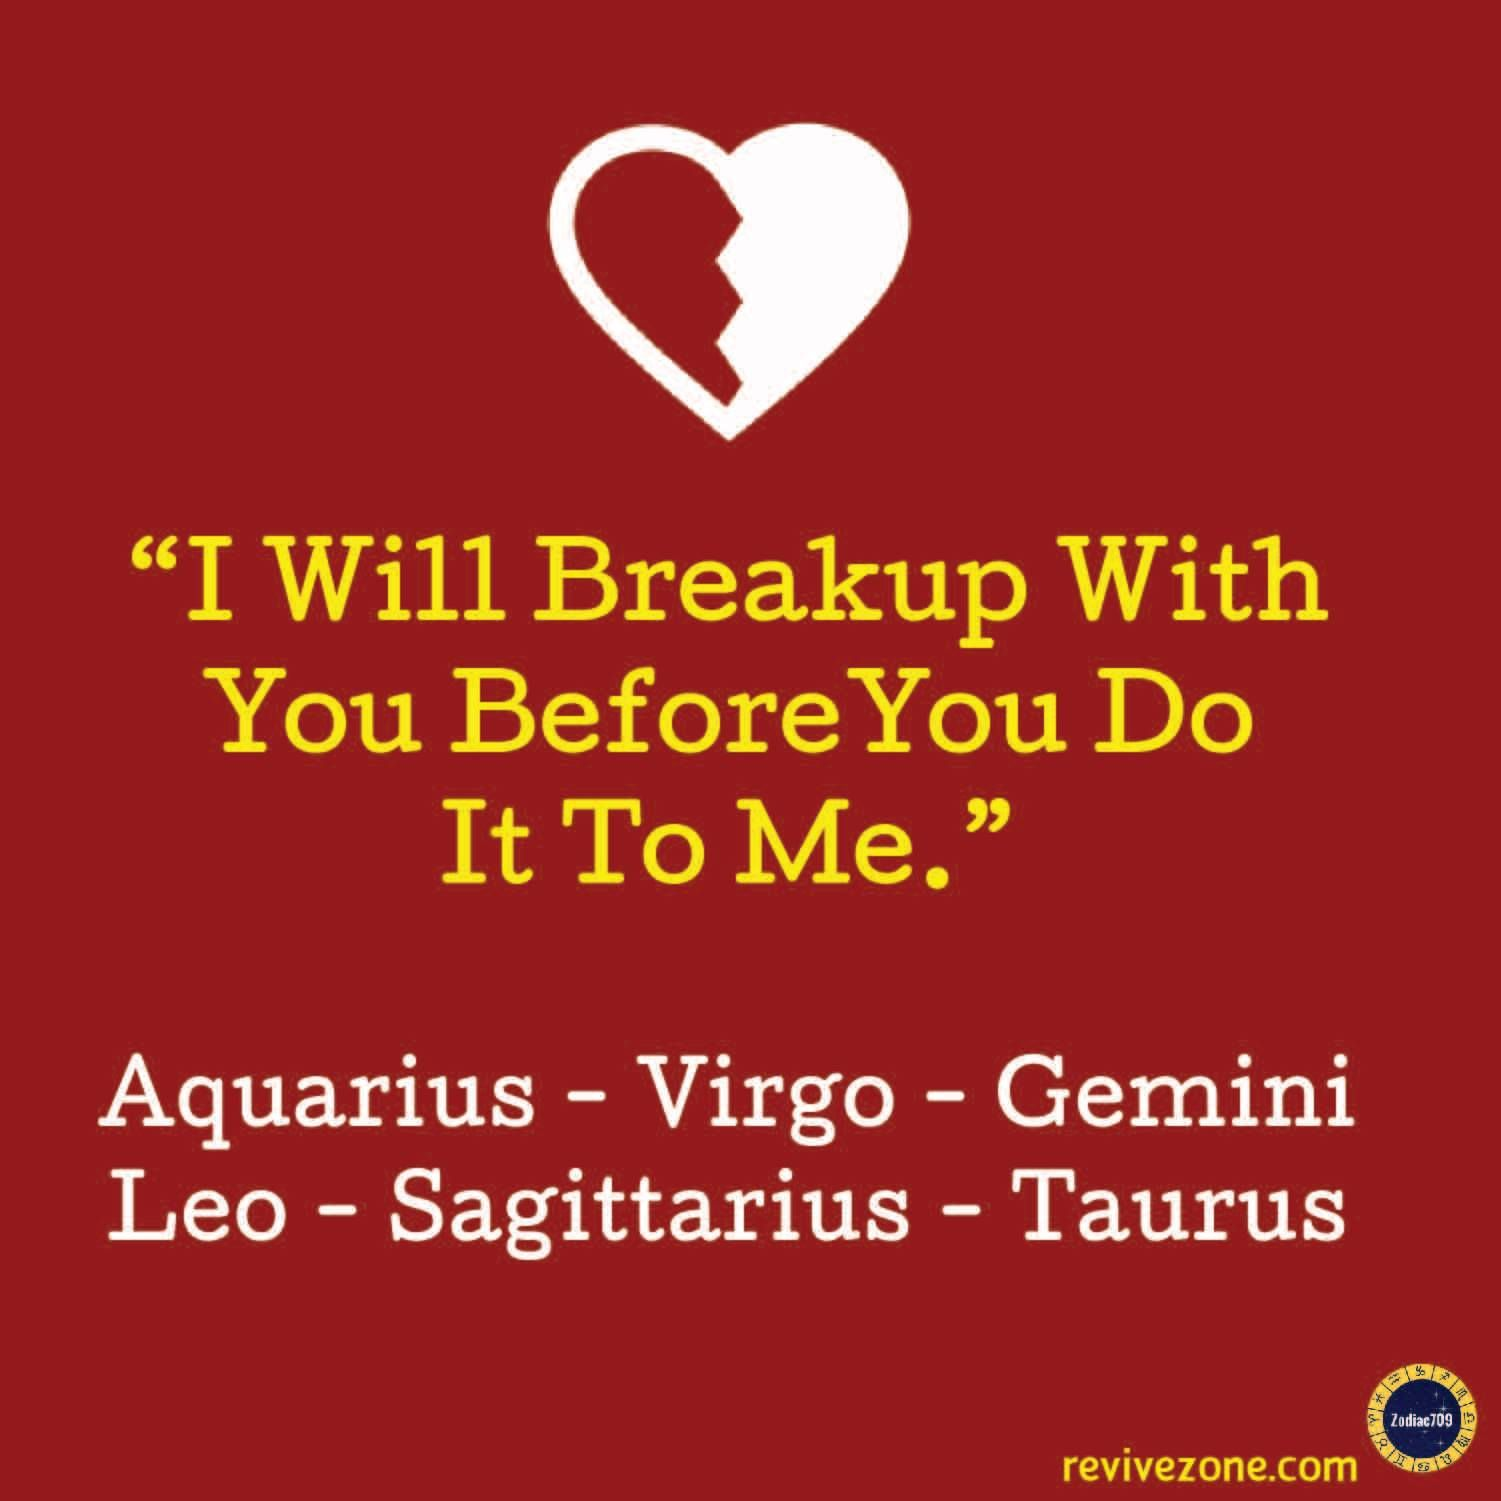 zodiac signs, aries, taurus, gemini, cancer, leo, virgo